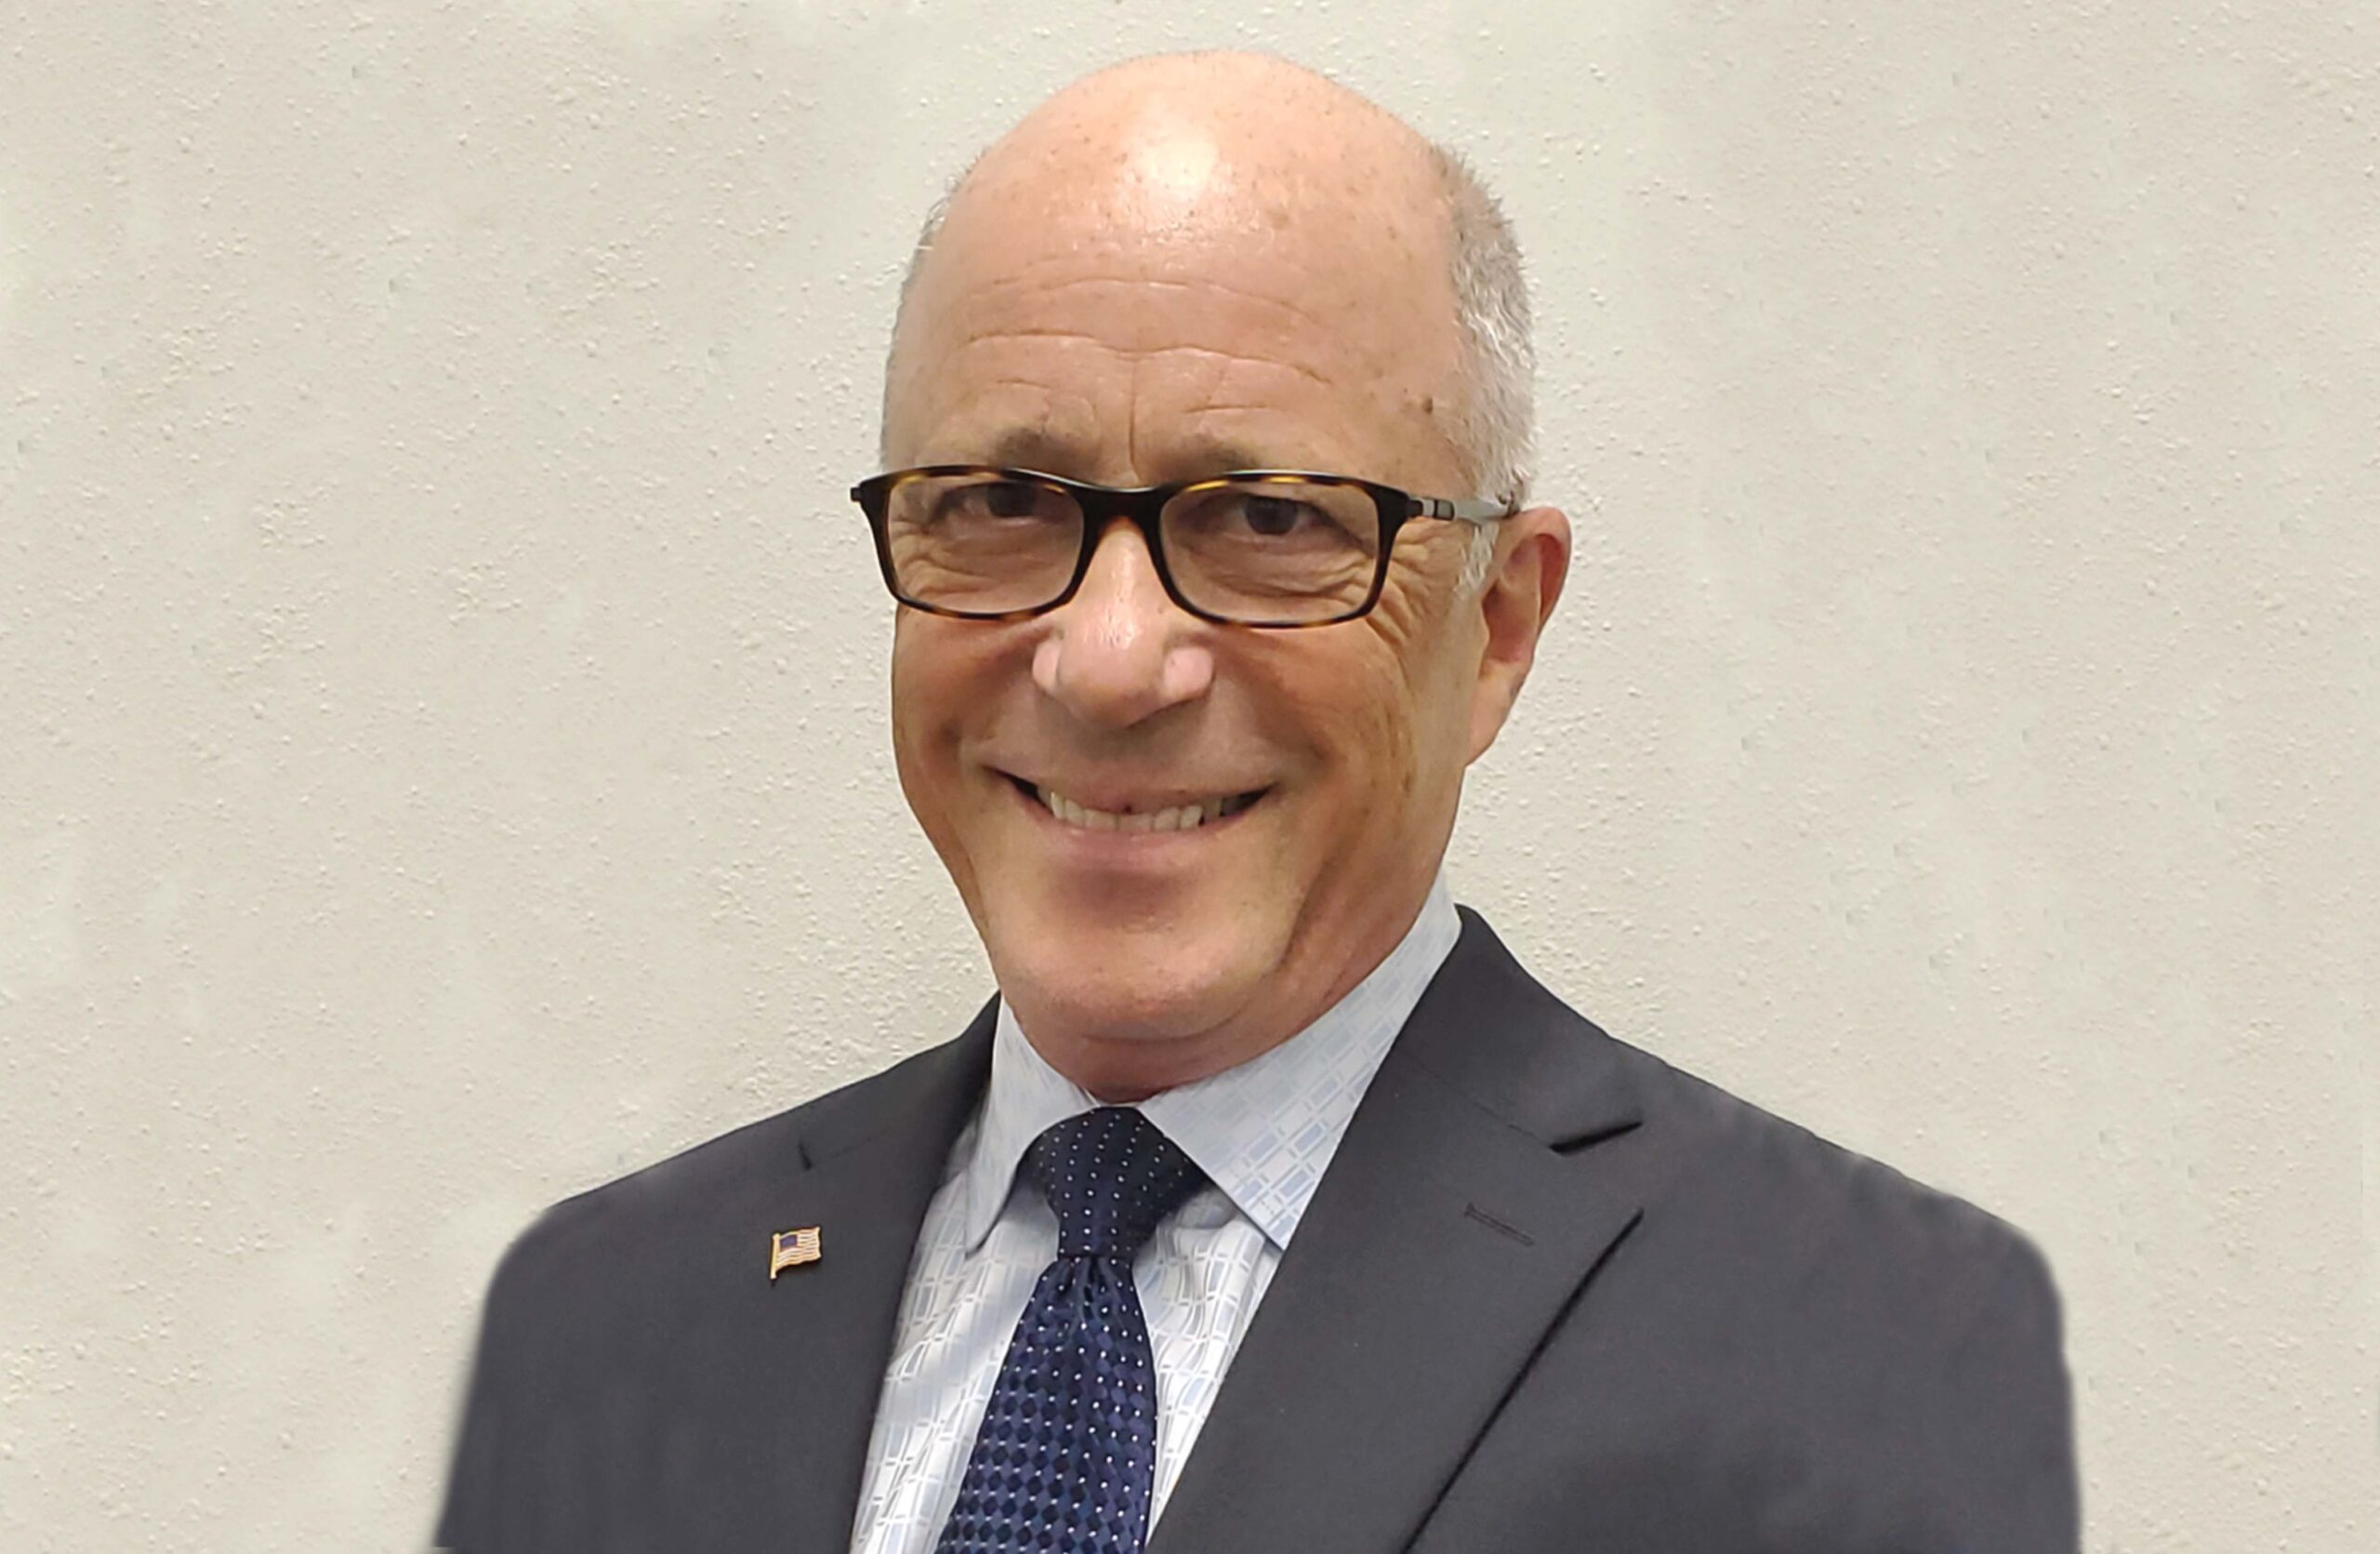 U.S. Department of Homeland Security appoints Acuity's Chief Medical Officer to National Merchant Mariner Medical Advisory Committee